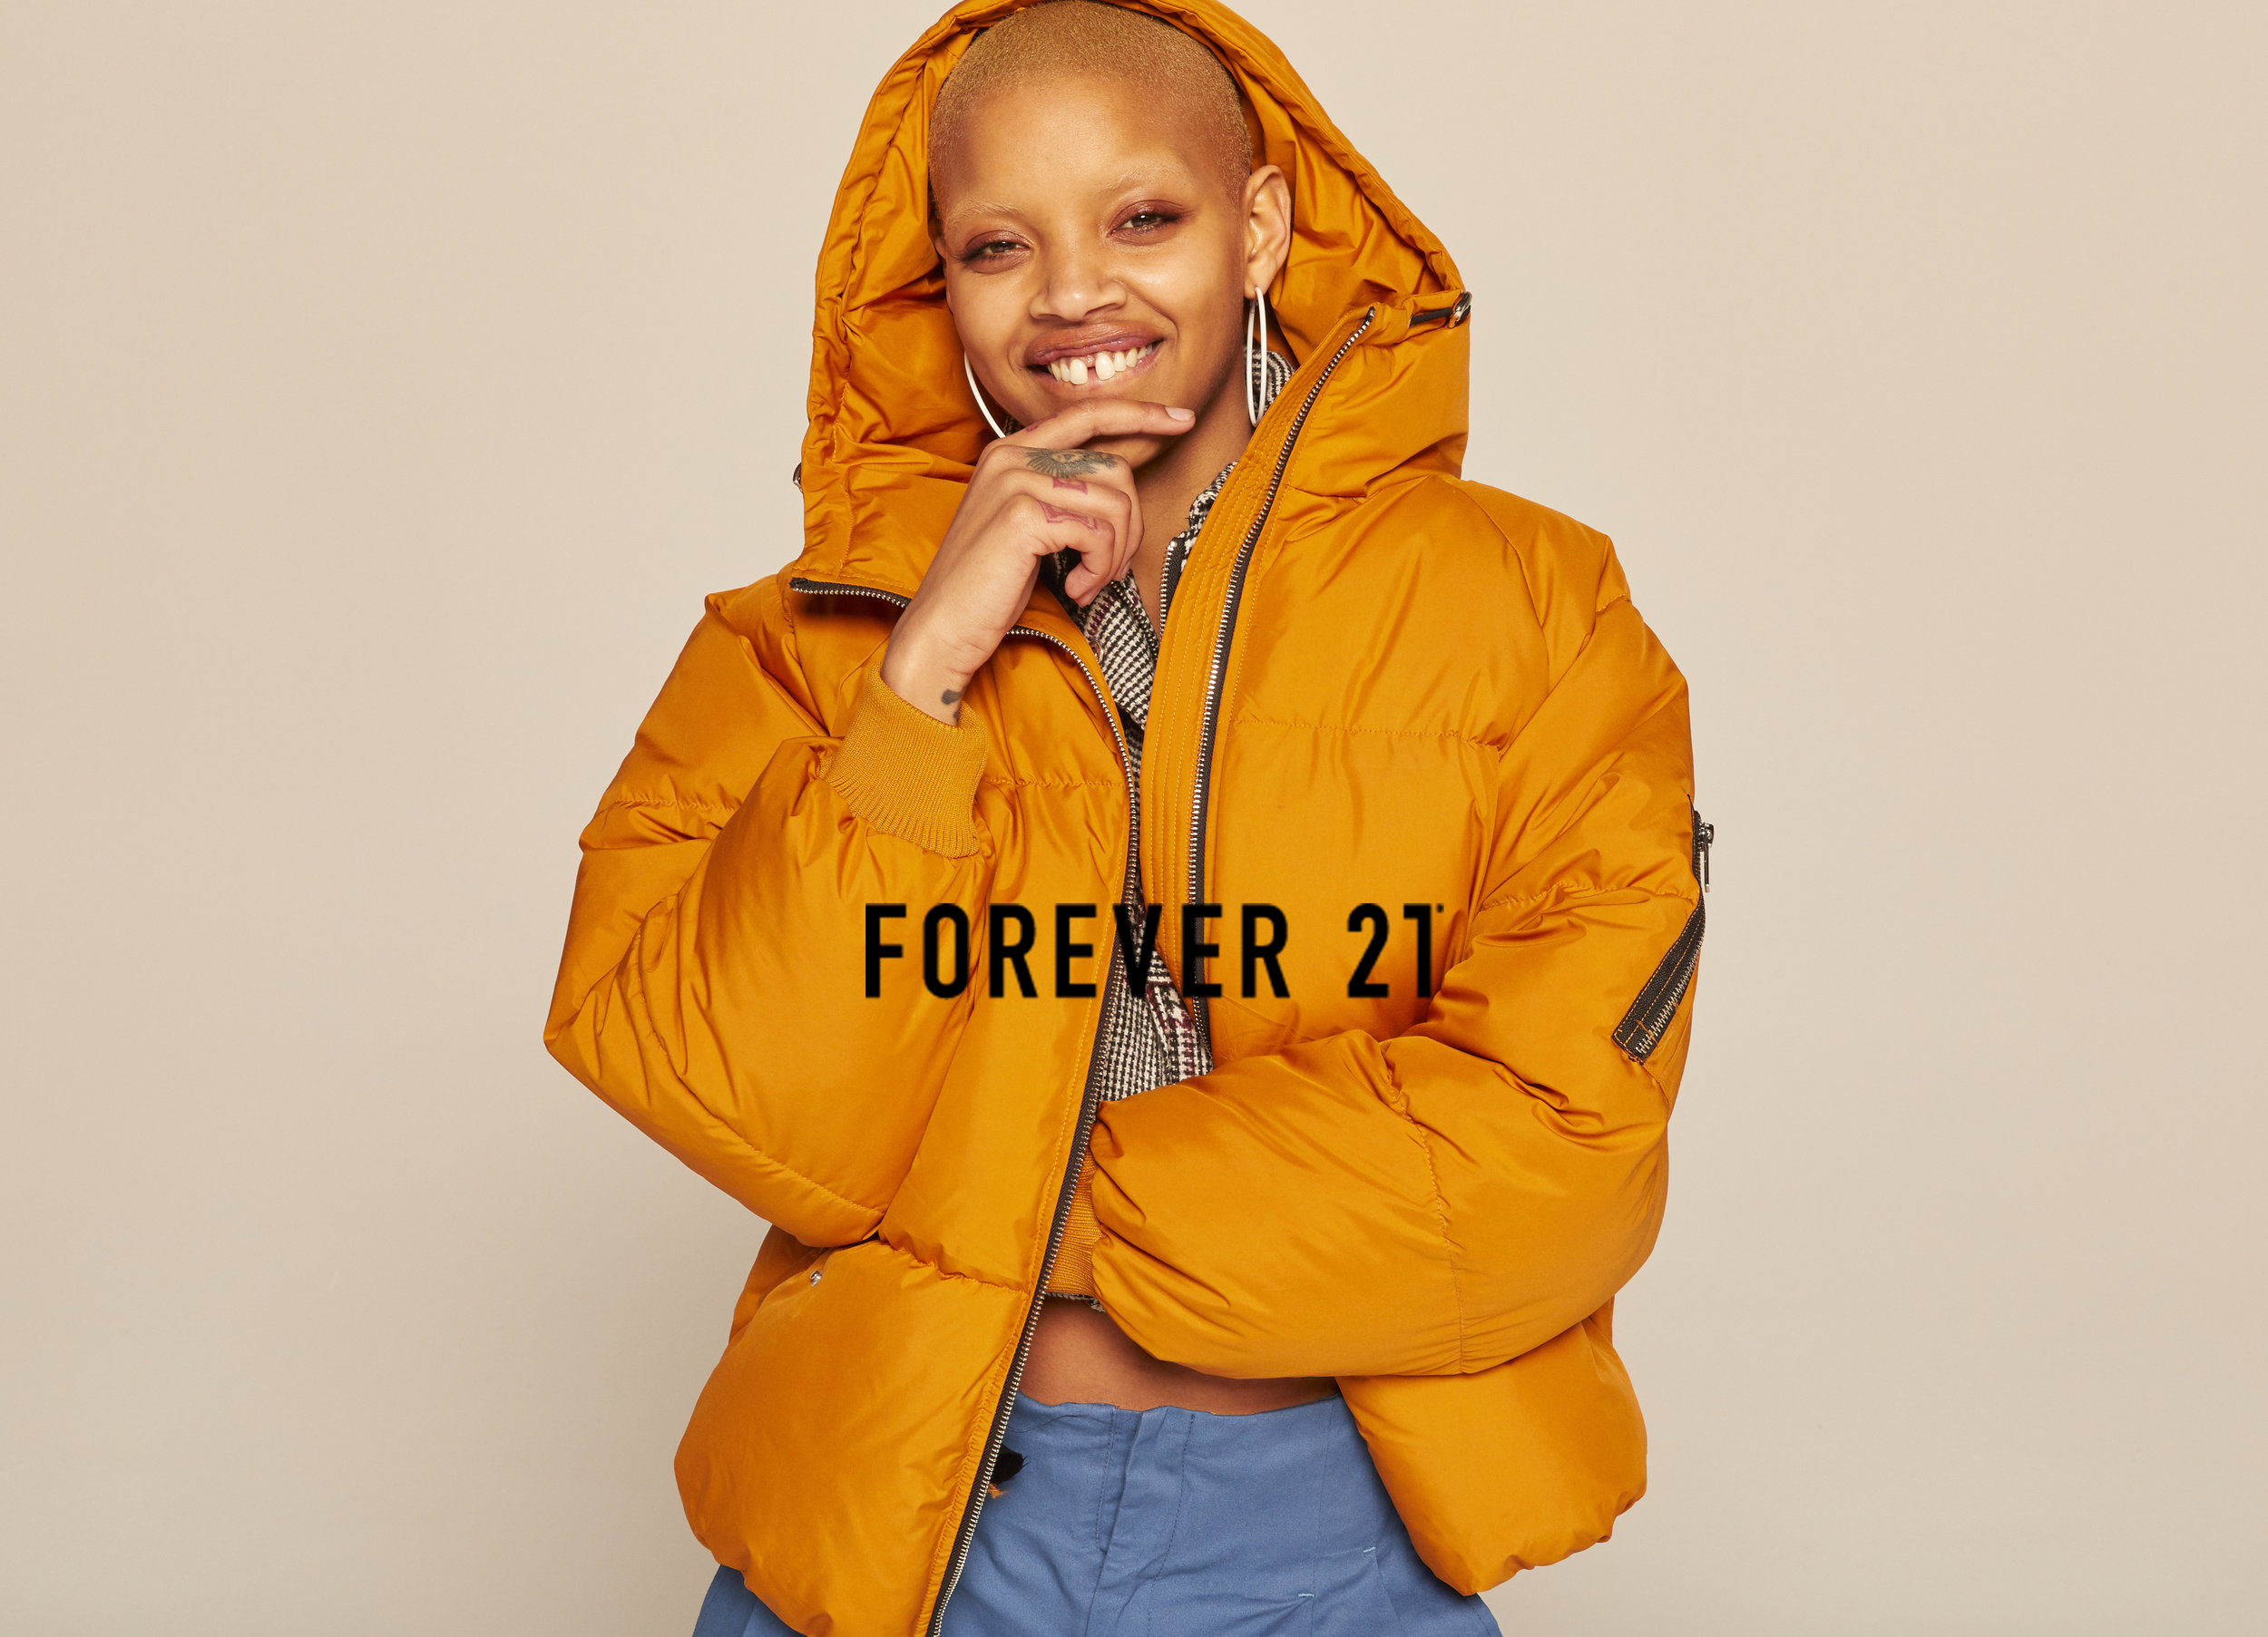 180226_FOREVER21_FW18_CAMPAIGN_SHOT08_WINTERTREND_0529.jpg